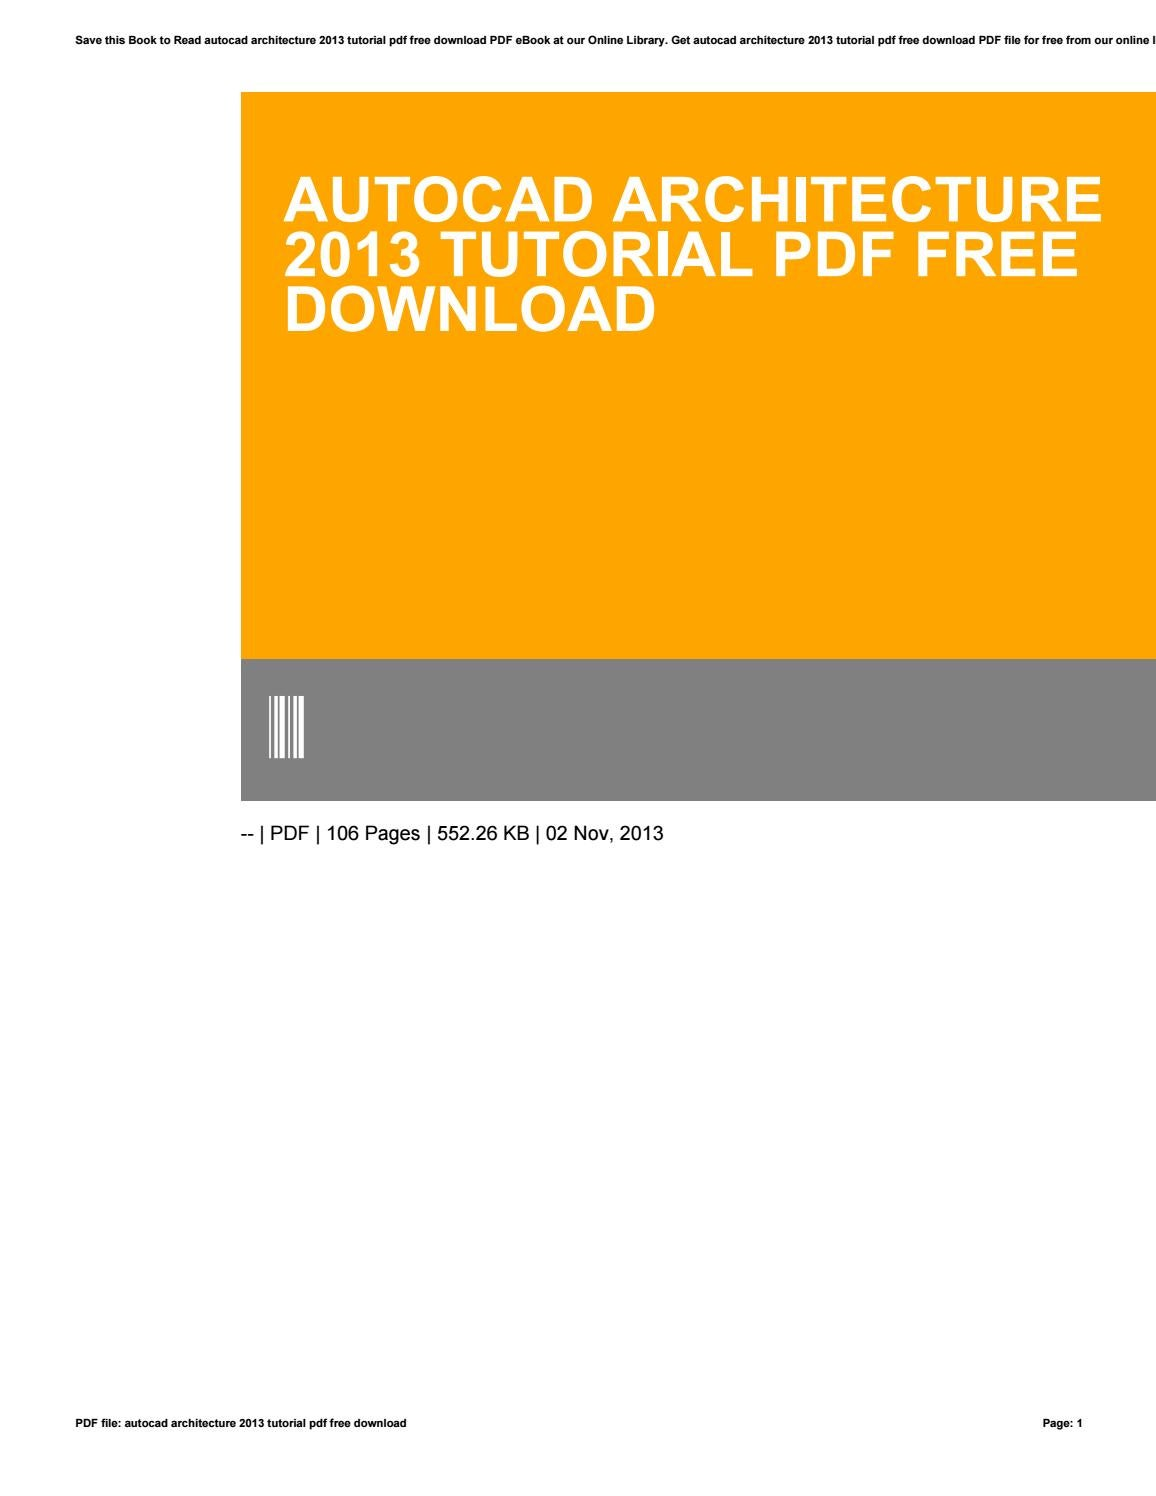 Autocad architecture 2013 tutorial pdf free download by kazelink25 autocad architecture 2013 tutorial pdf free download by kazelink25 issuu baditri Image collections